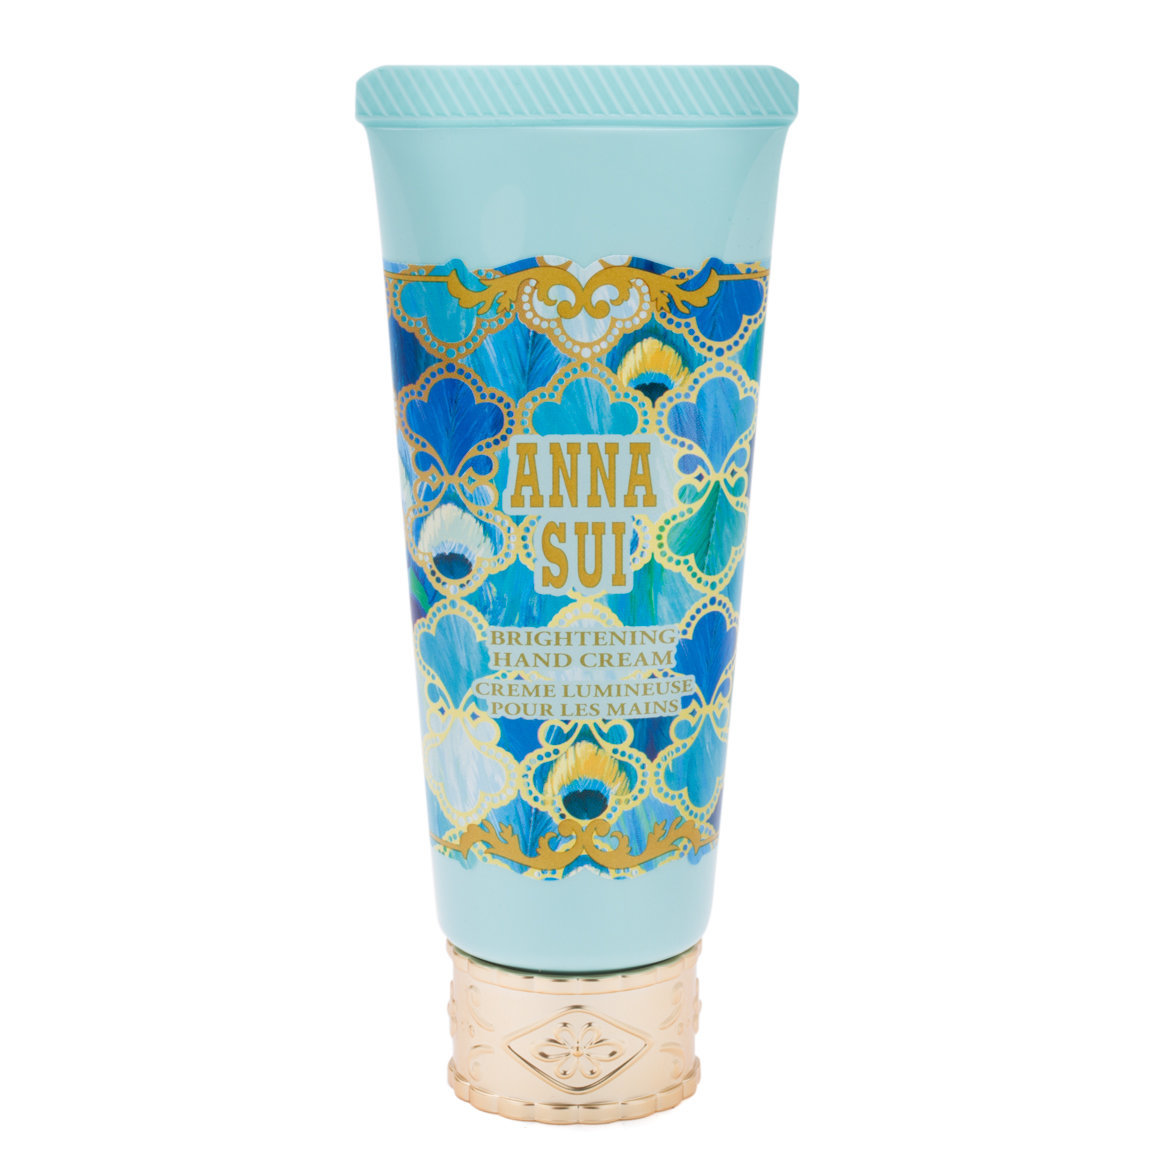 Anna Sui Brightening Hand Cream alternative view 1.